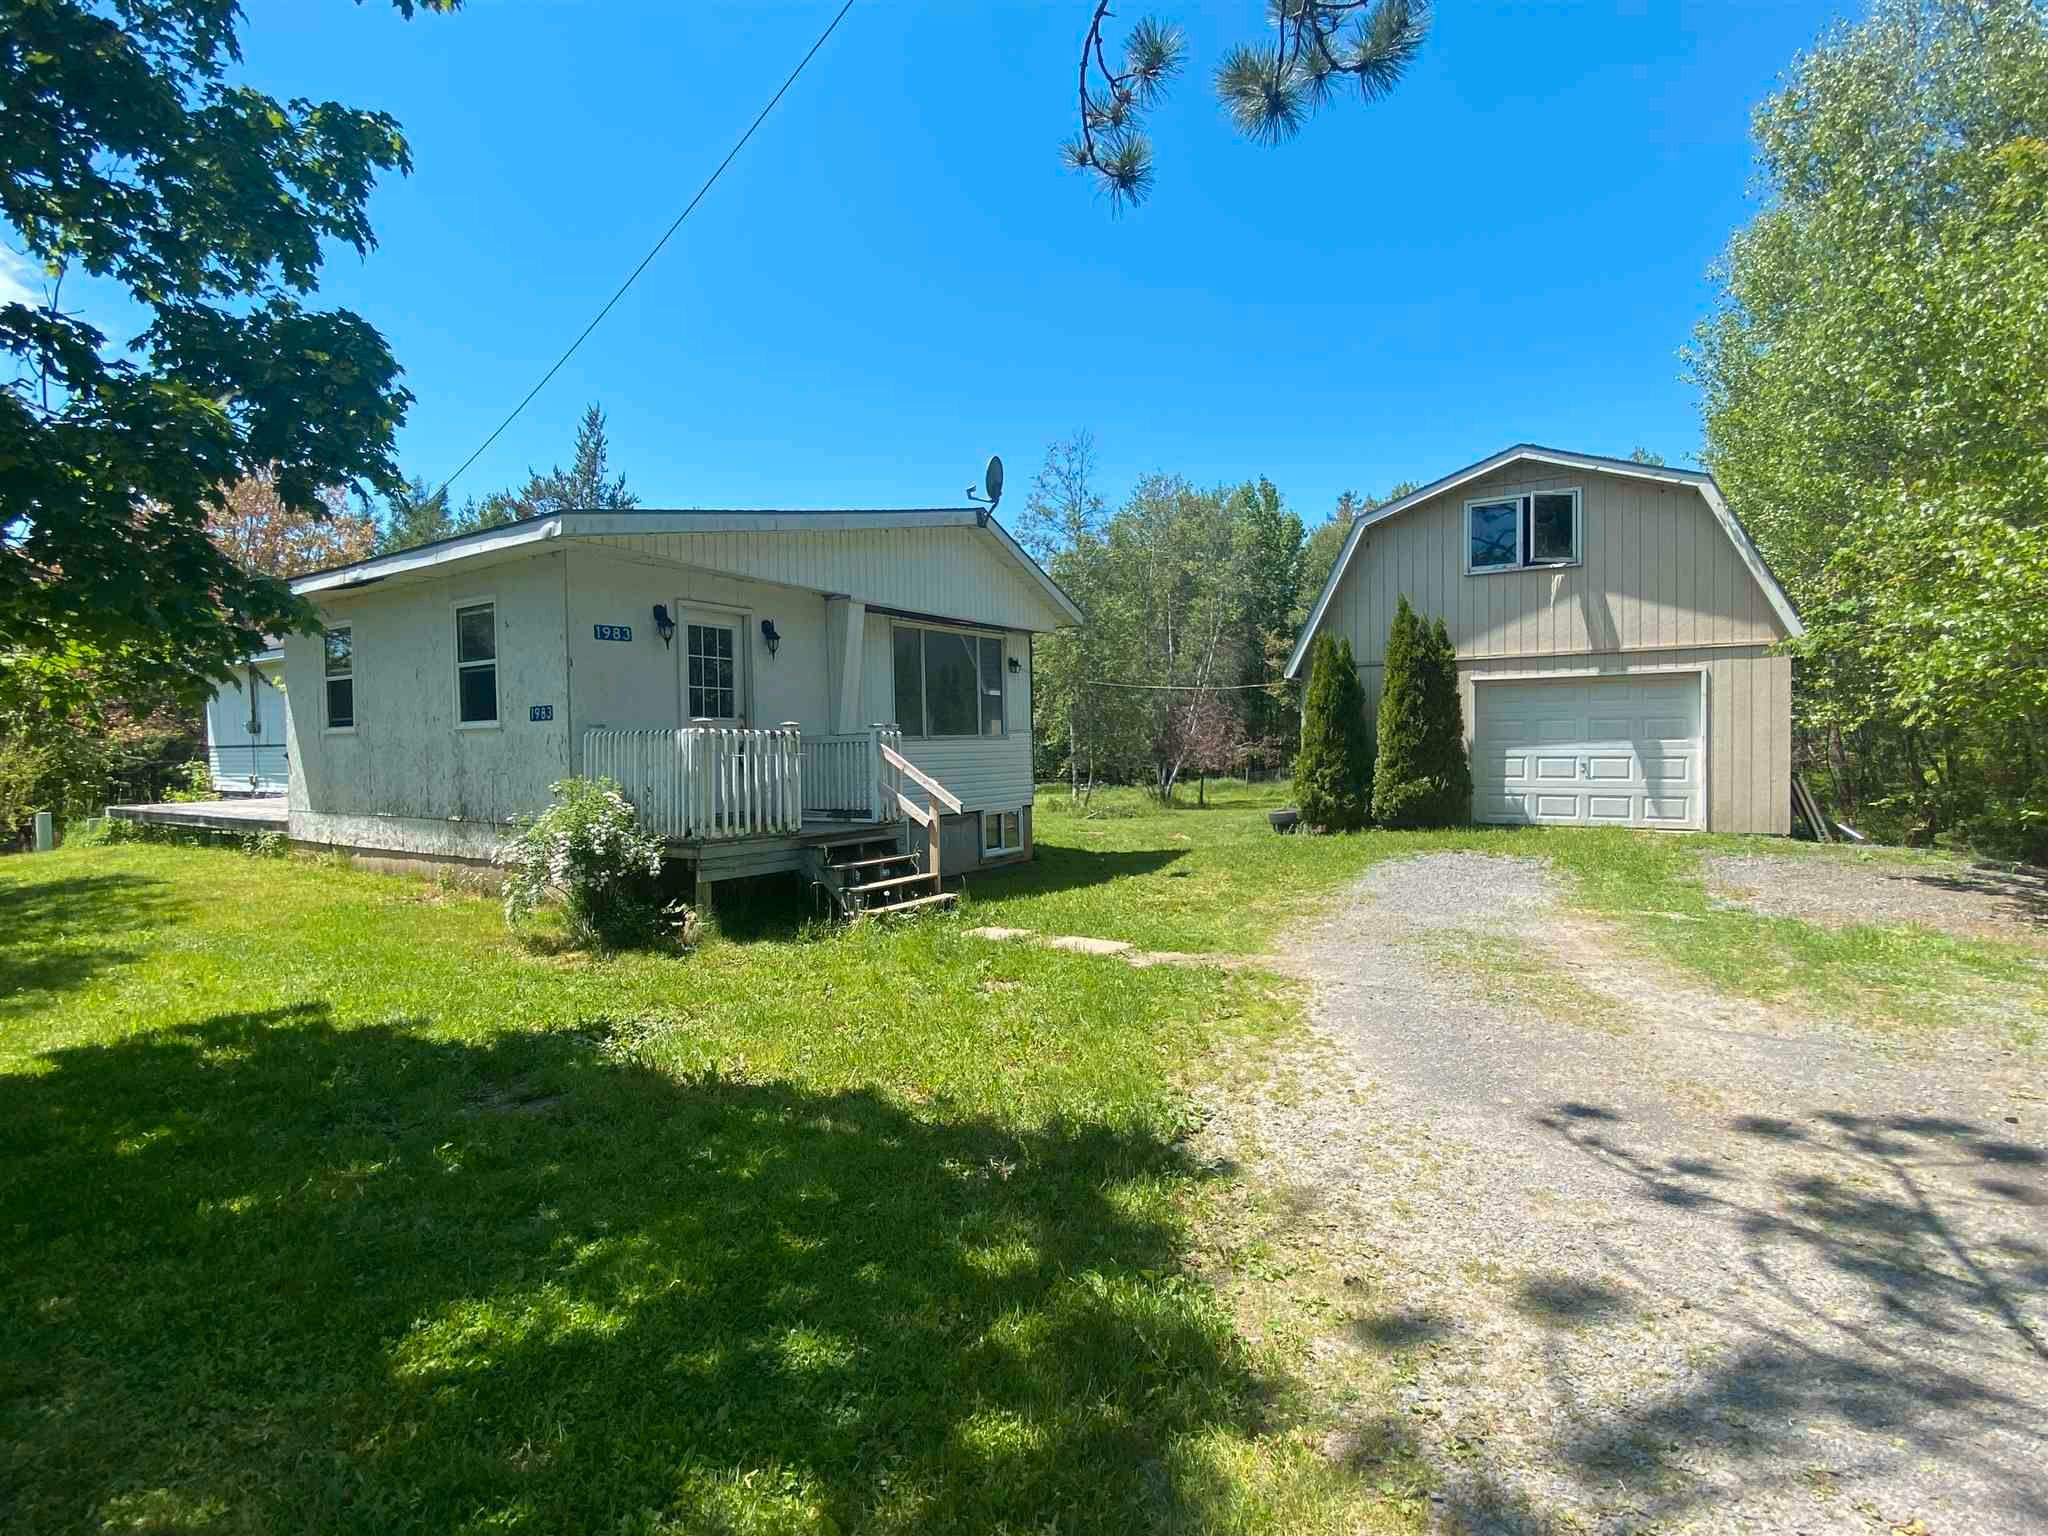 Main Photo: 1983 North River Road in Mosherville: 403-Hants County Residential for sale (Annapolis Valley)  : MLS®# 202114155